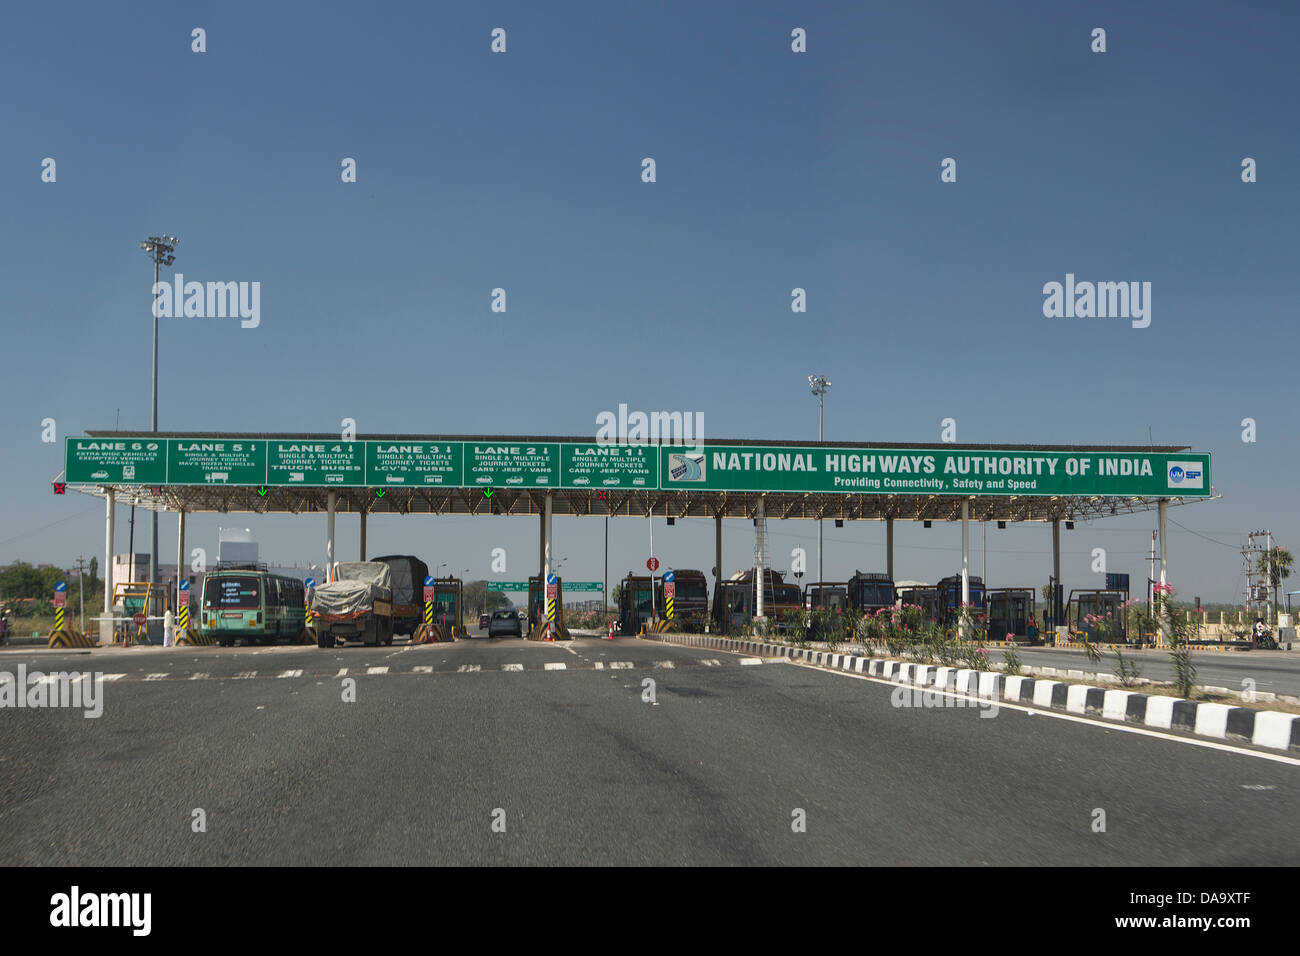 India, South India, Asia, Highway, Toll booth, board, control, expressway, gate, new, tax, toll, traffic - Stock Image